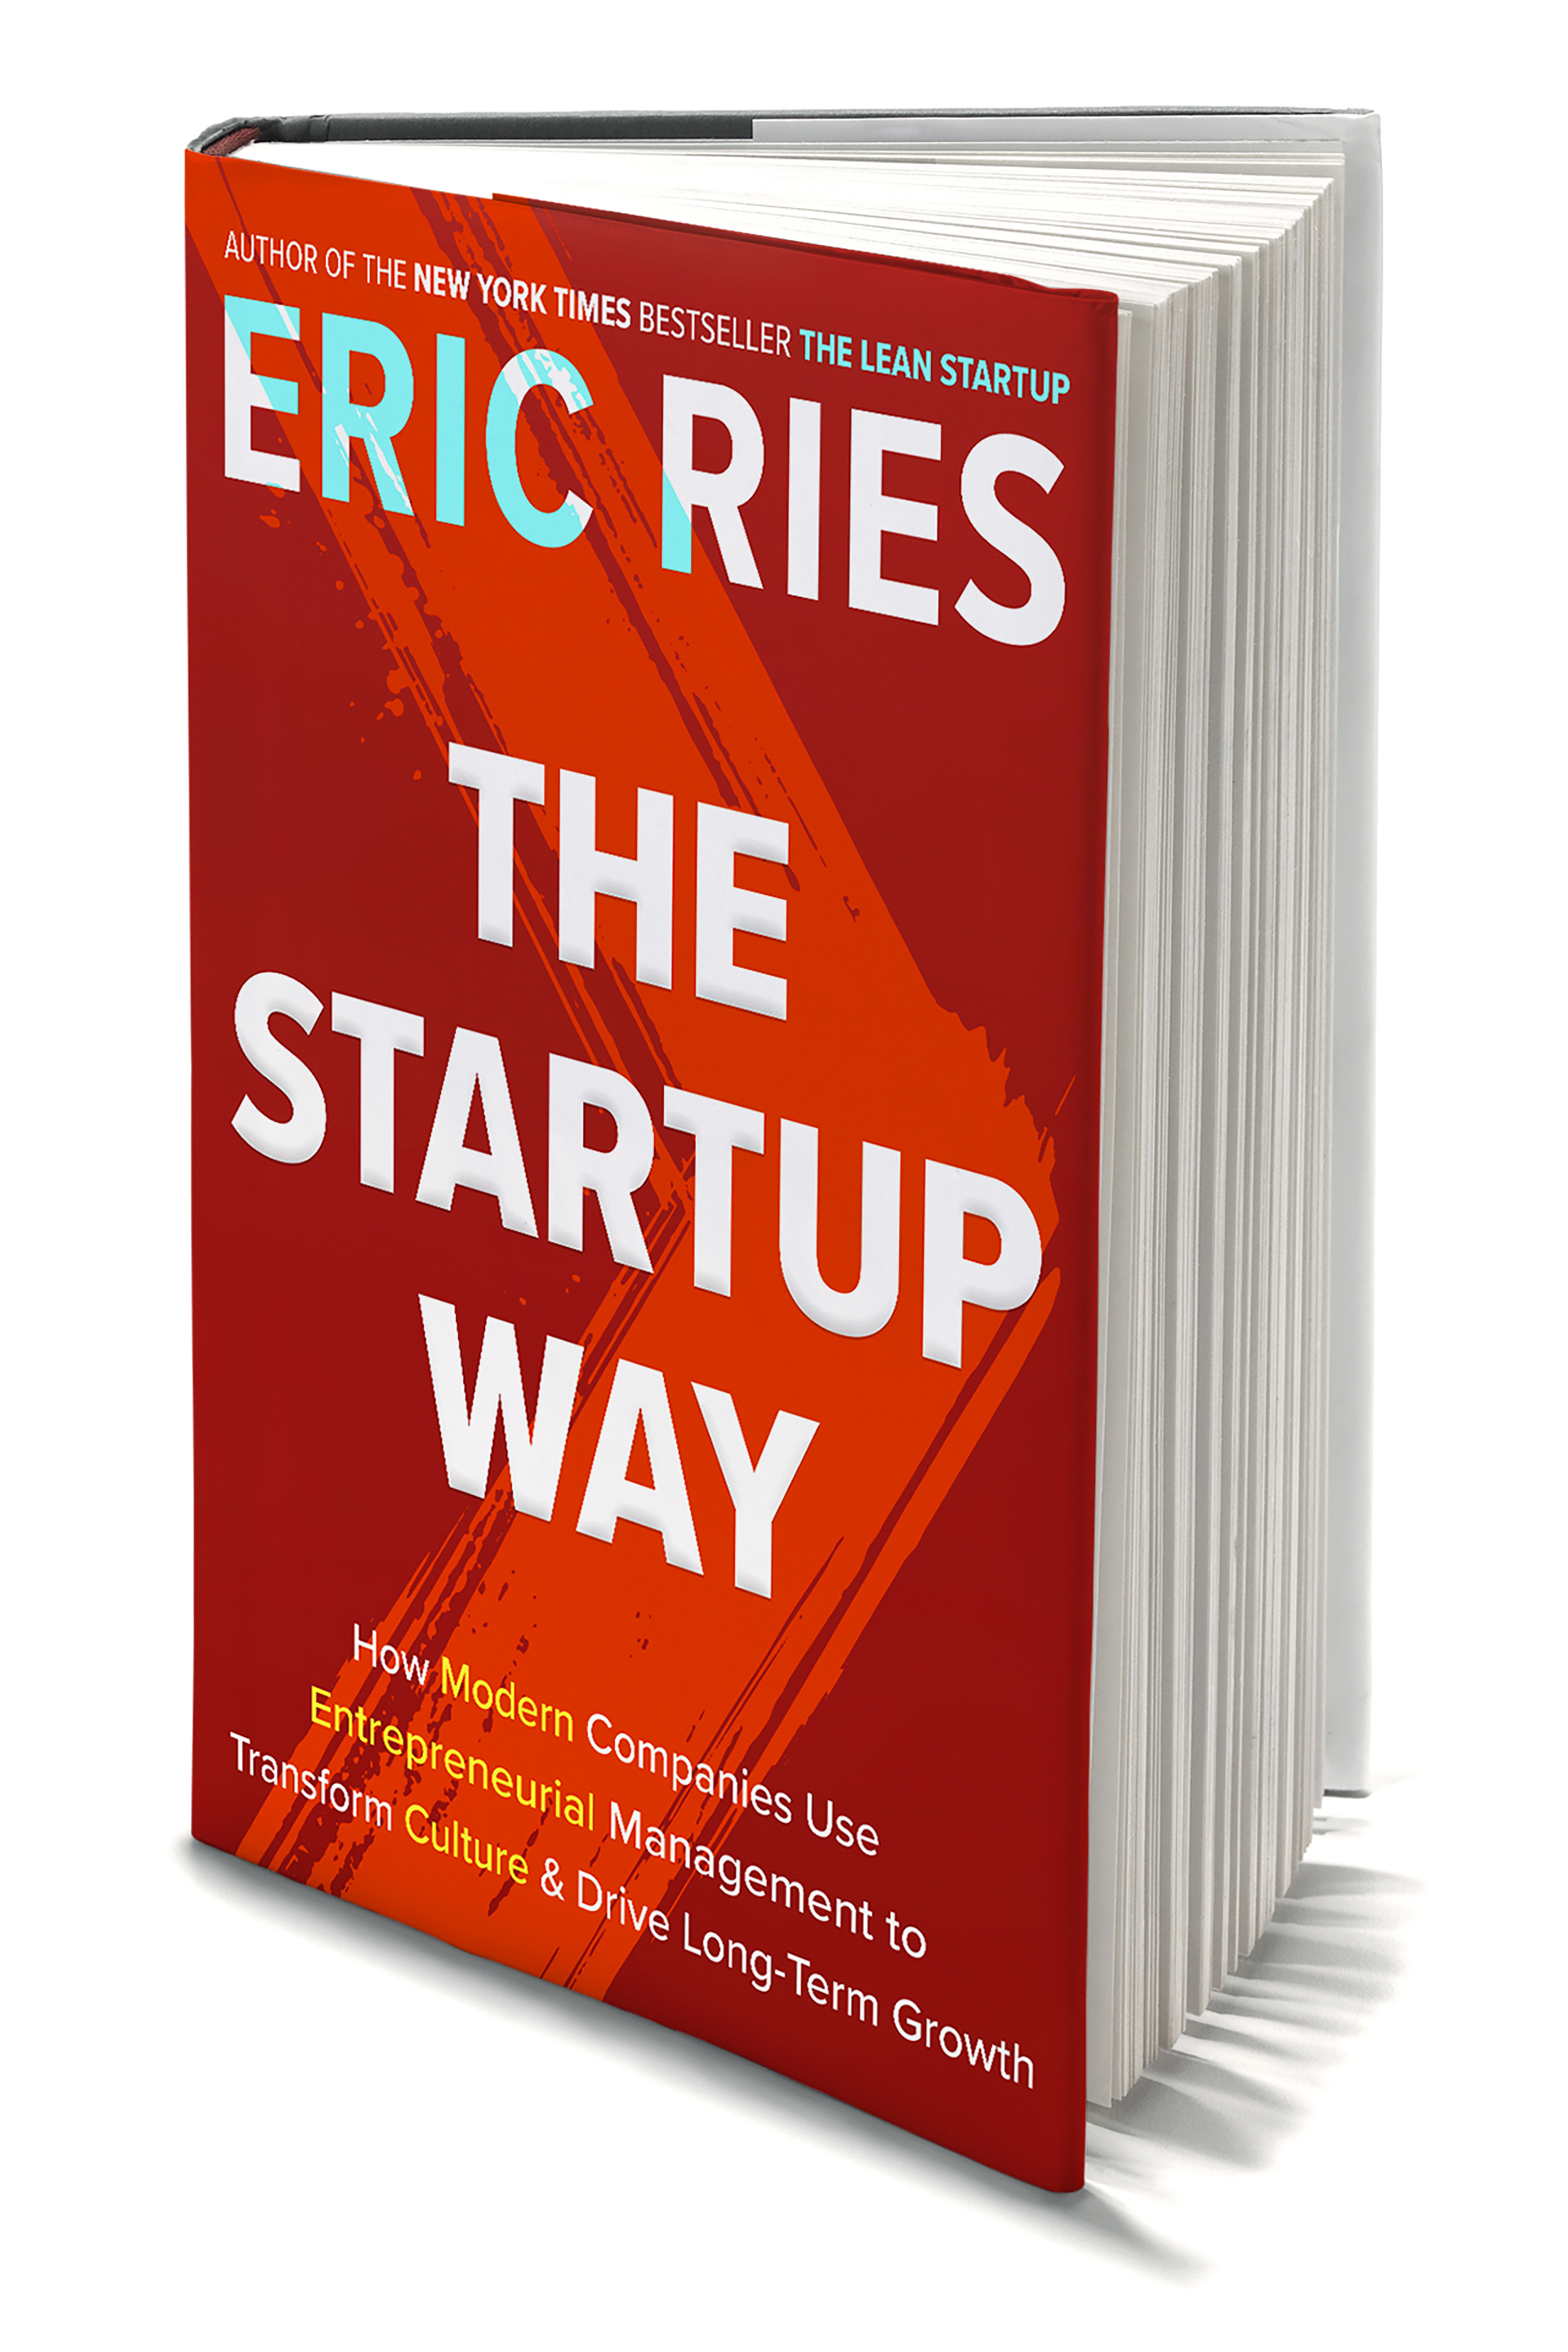 Eric Ries The Startup Way